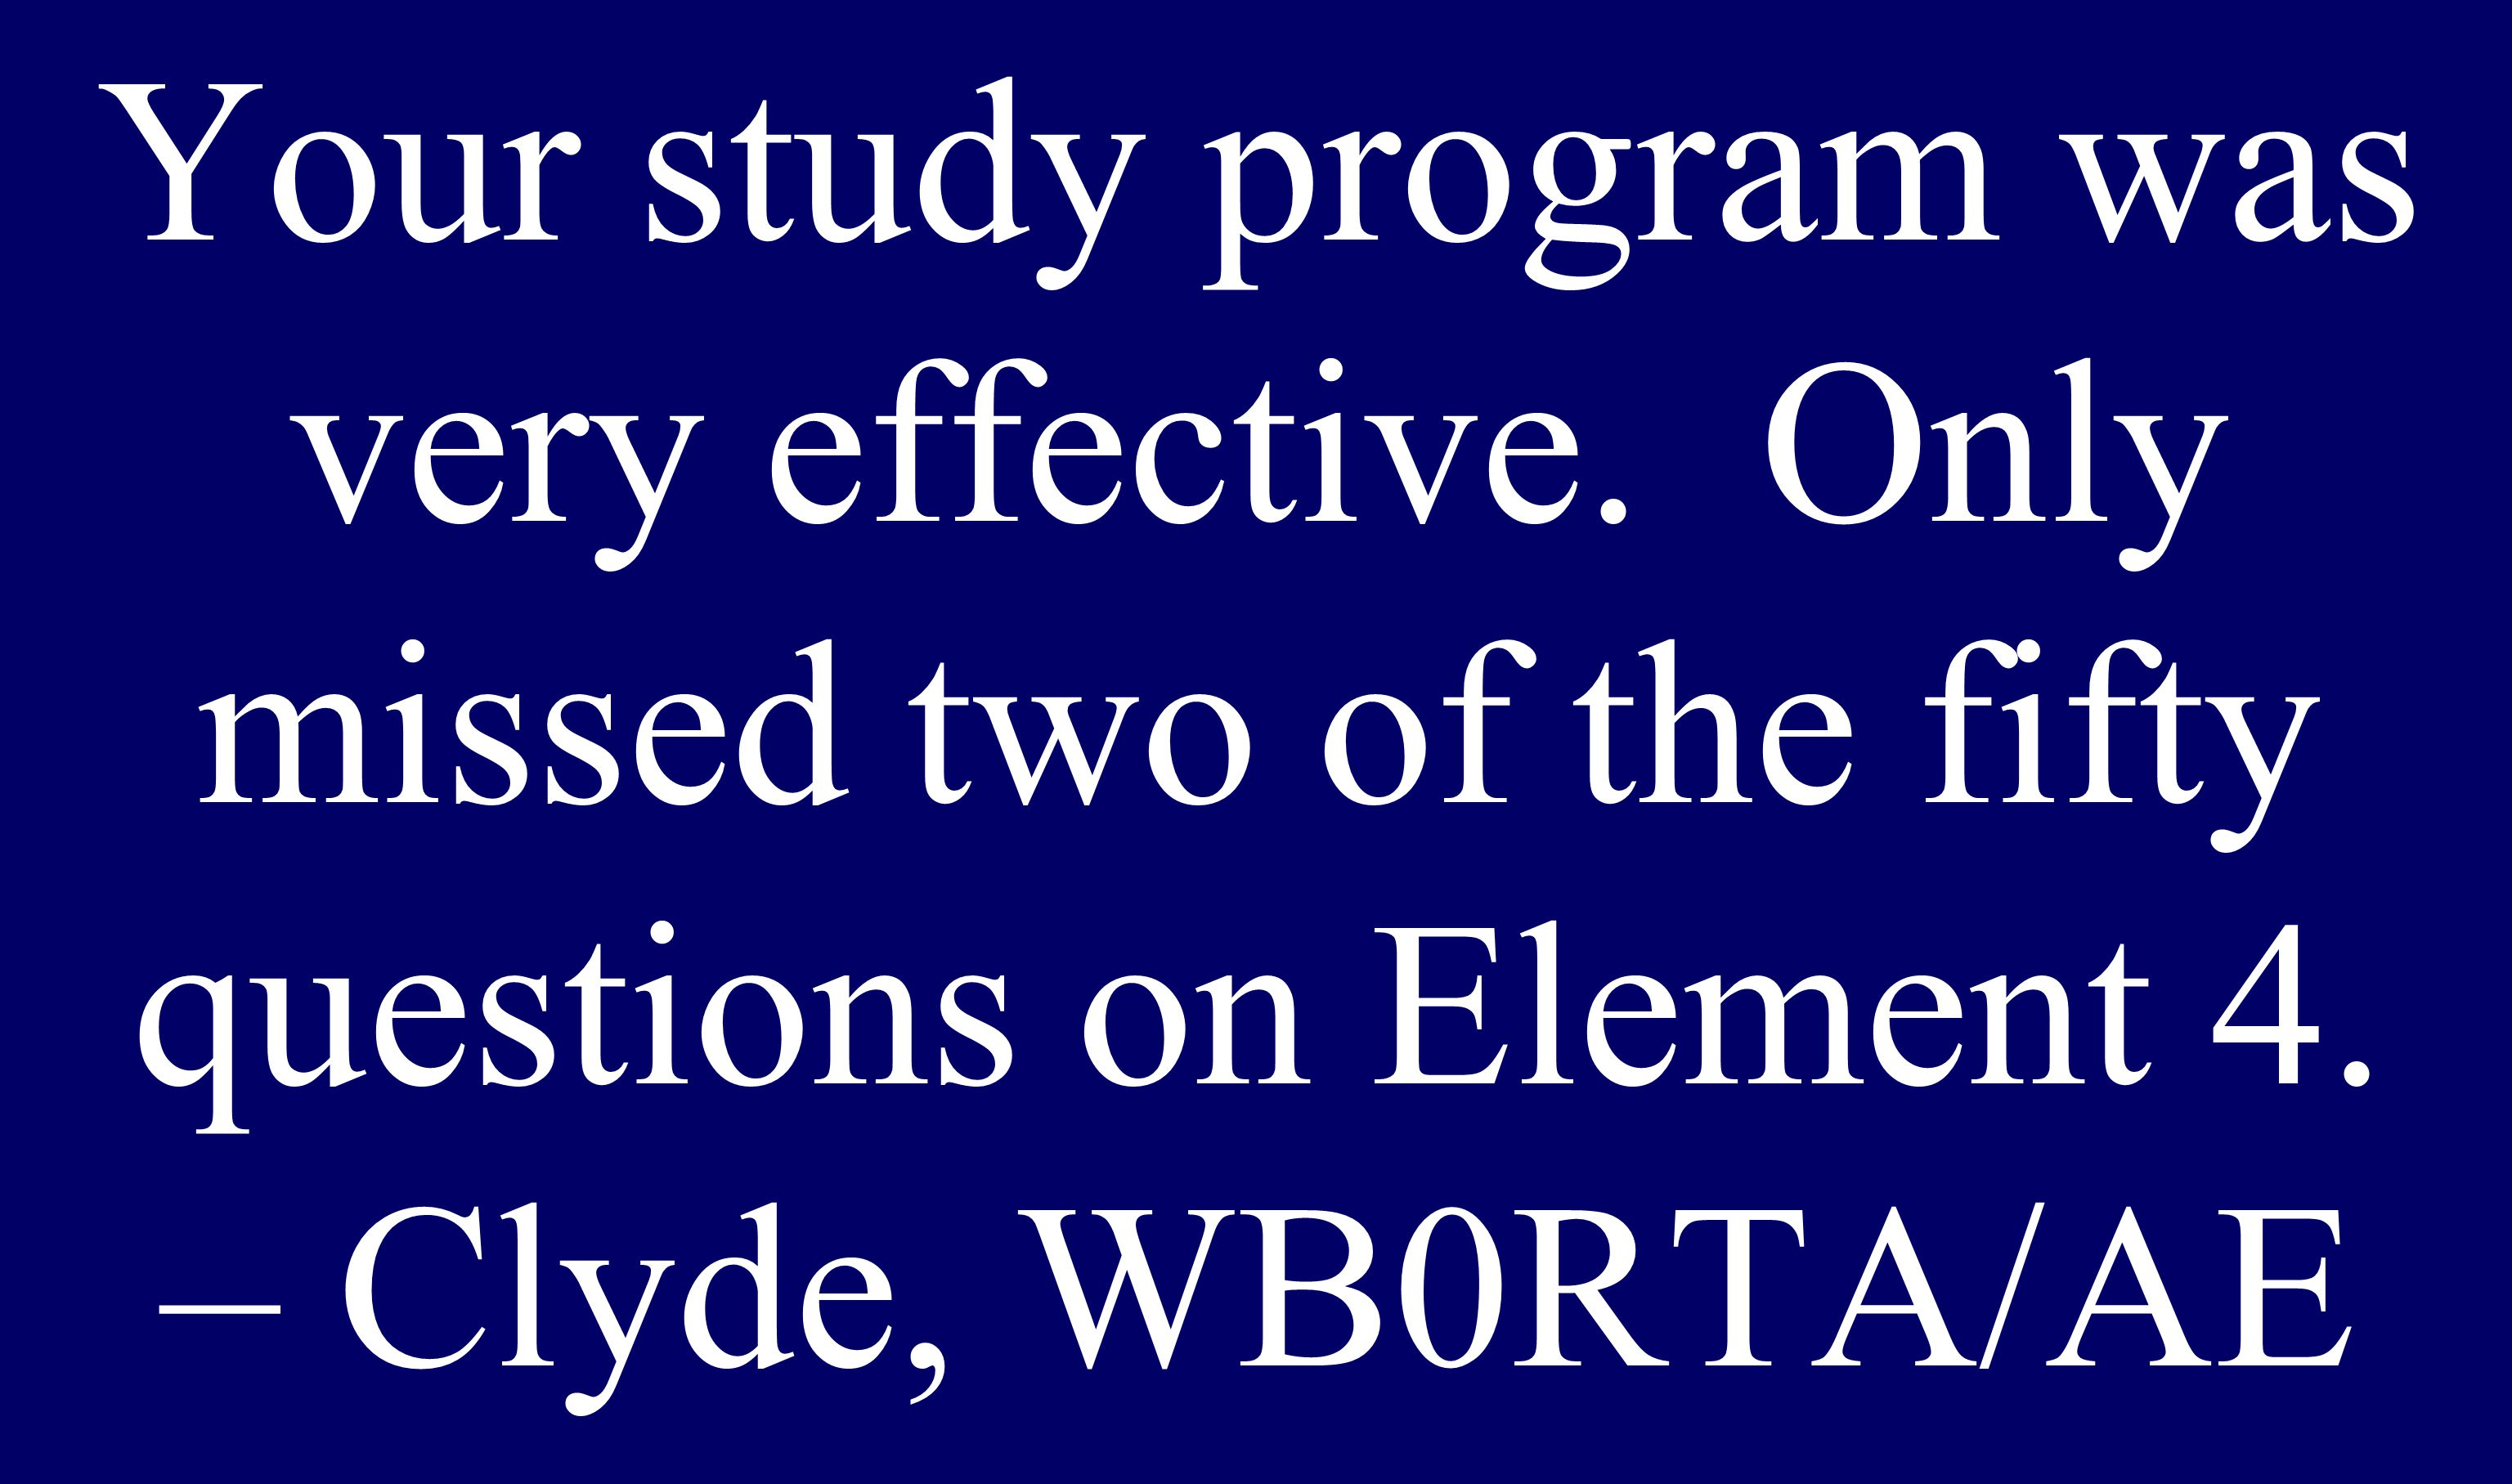 Your study program was very effective. Only missed two of the fifty questions on Element 4.